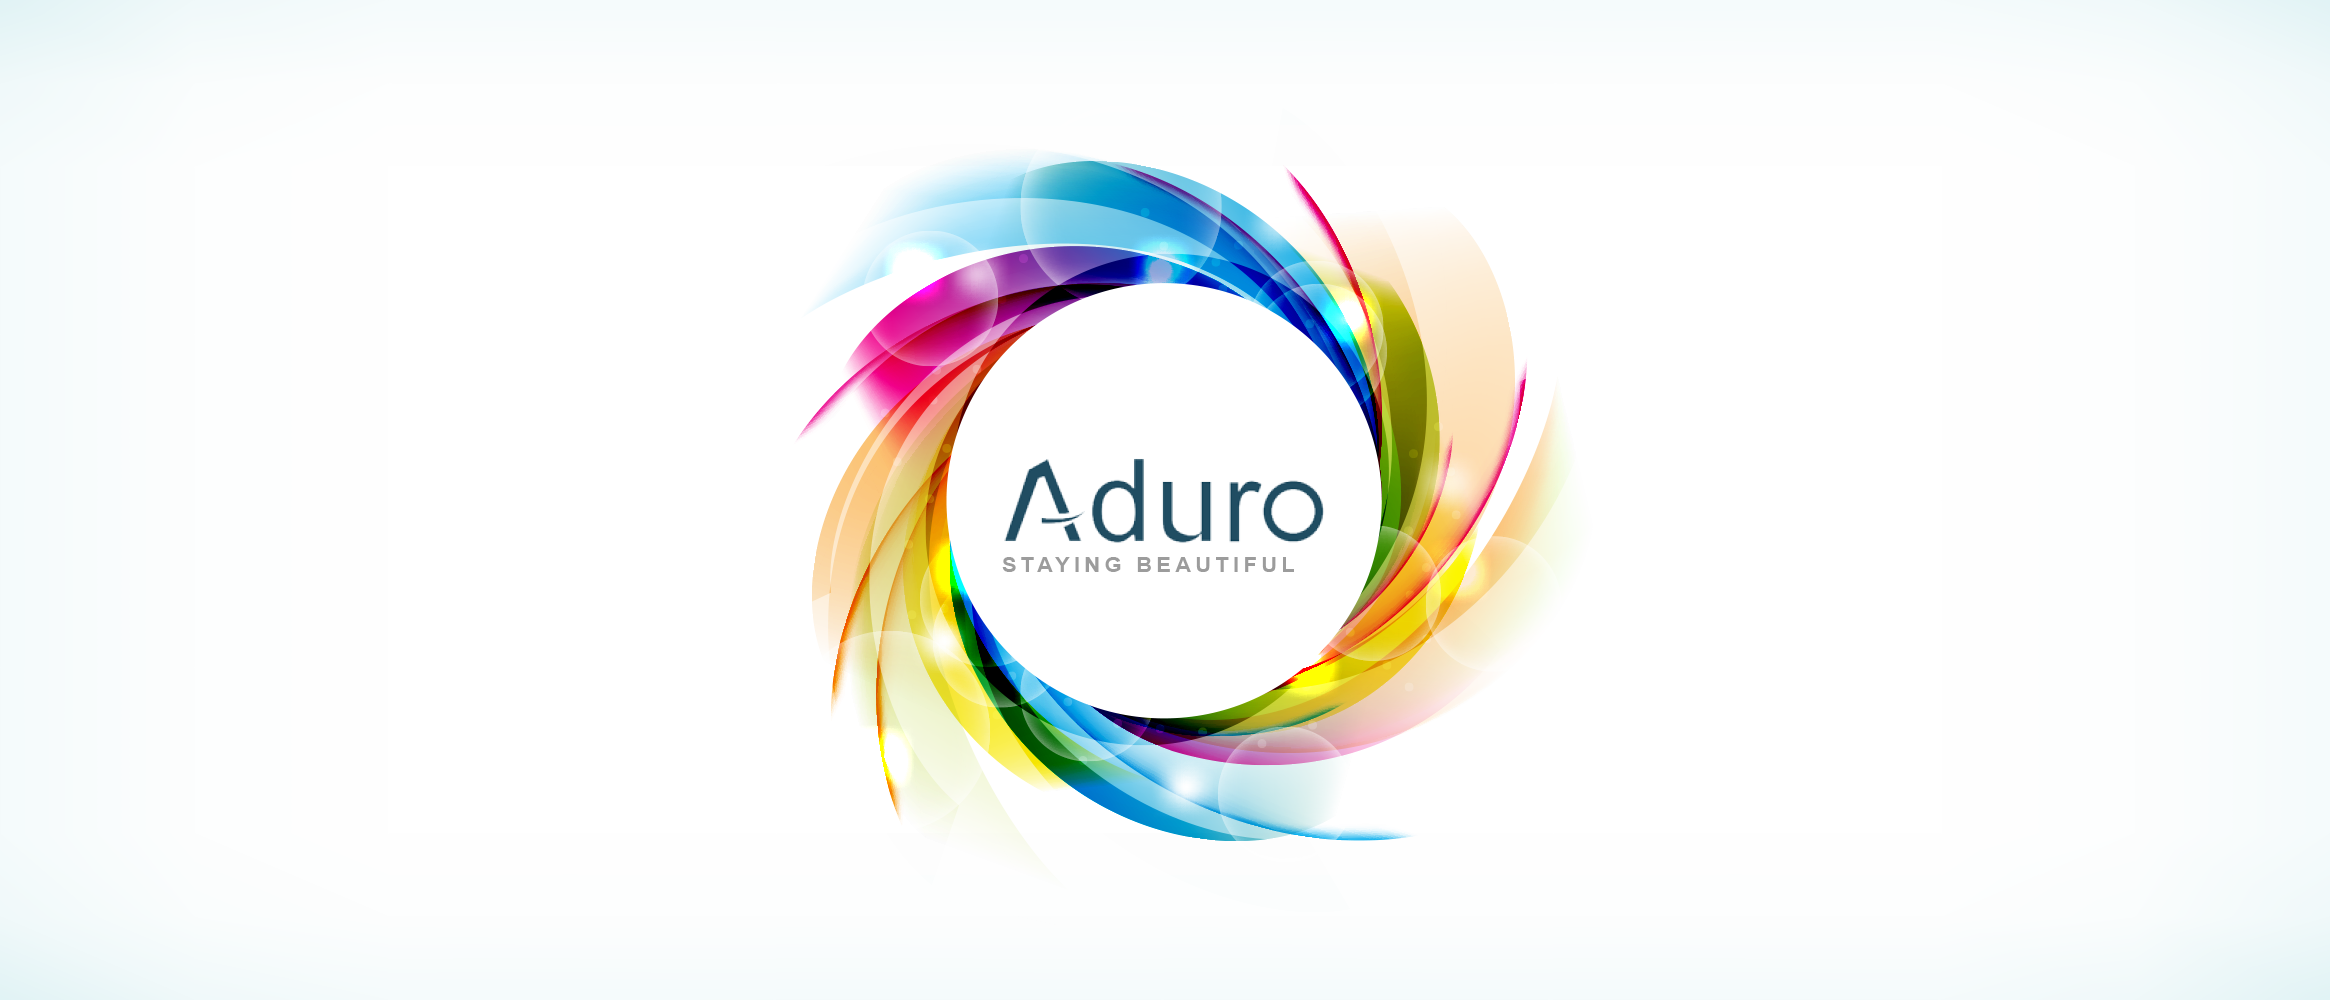 Aduroled.com